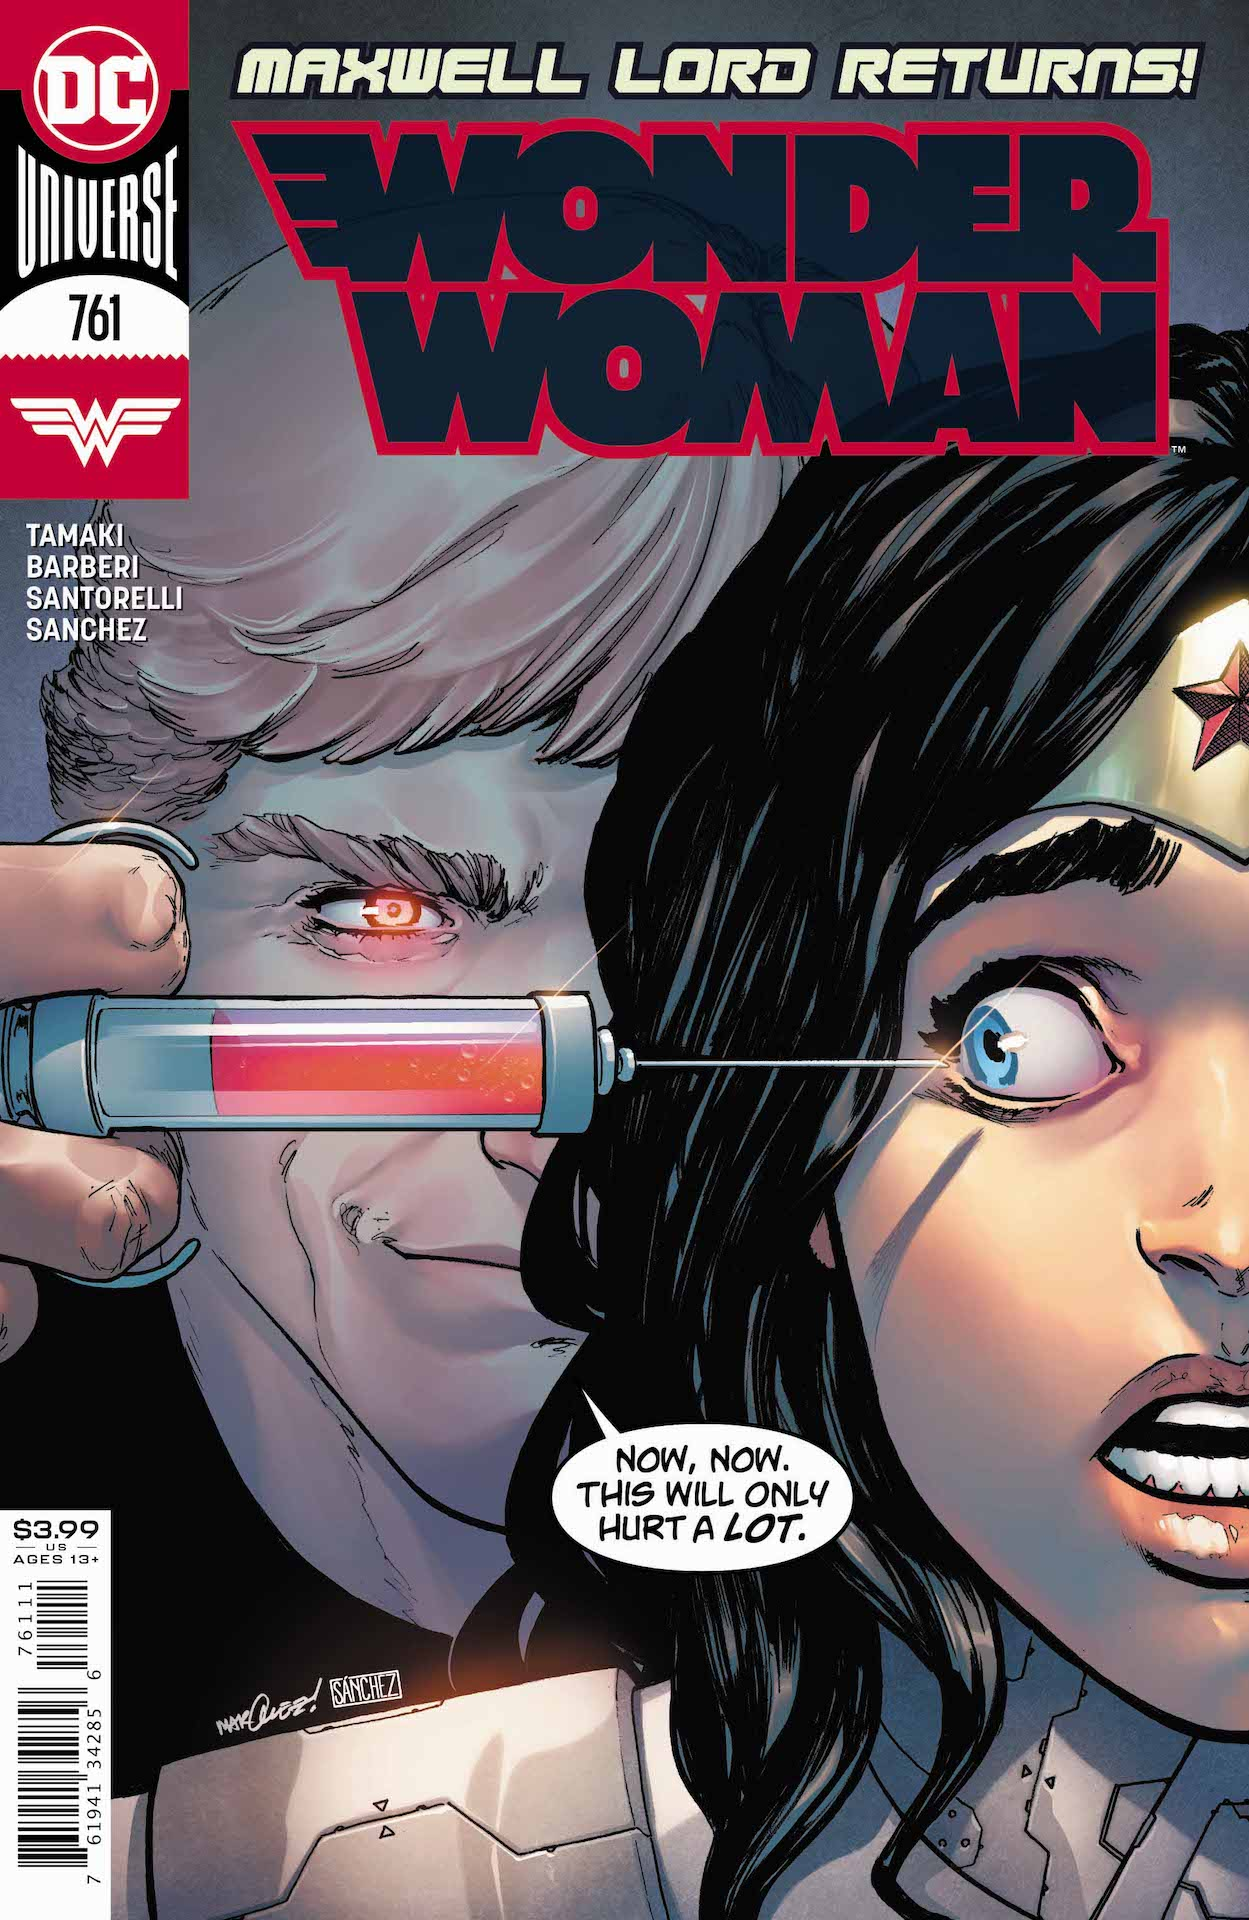 It's the team-up no one saw coming: Wonder Woman and Maxwell Lord!